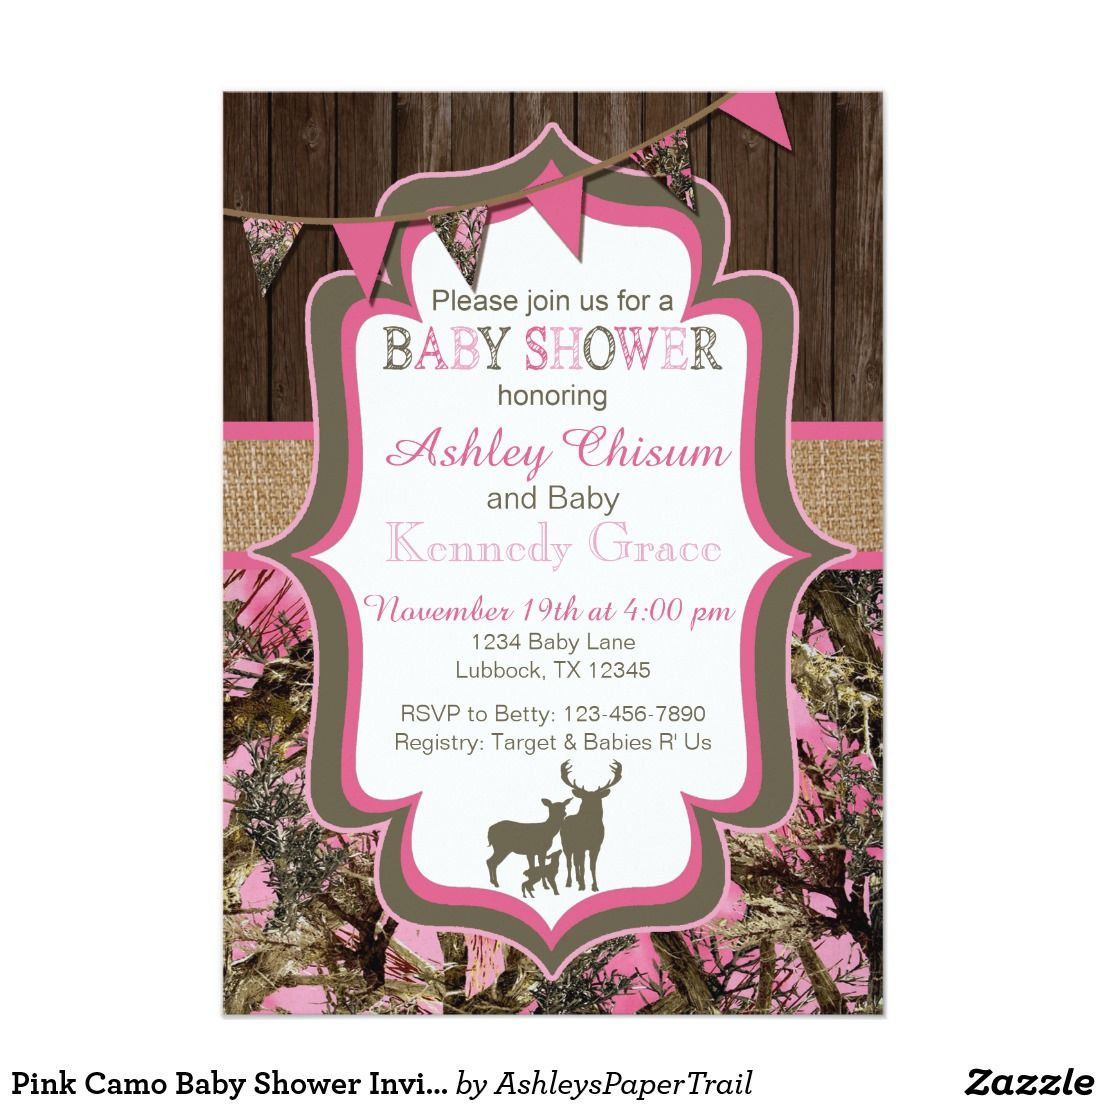 Pink Camo Baby Shower Invitation This adorable invitation is perfect ...